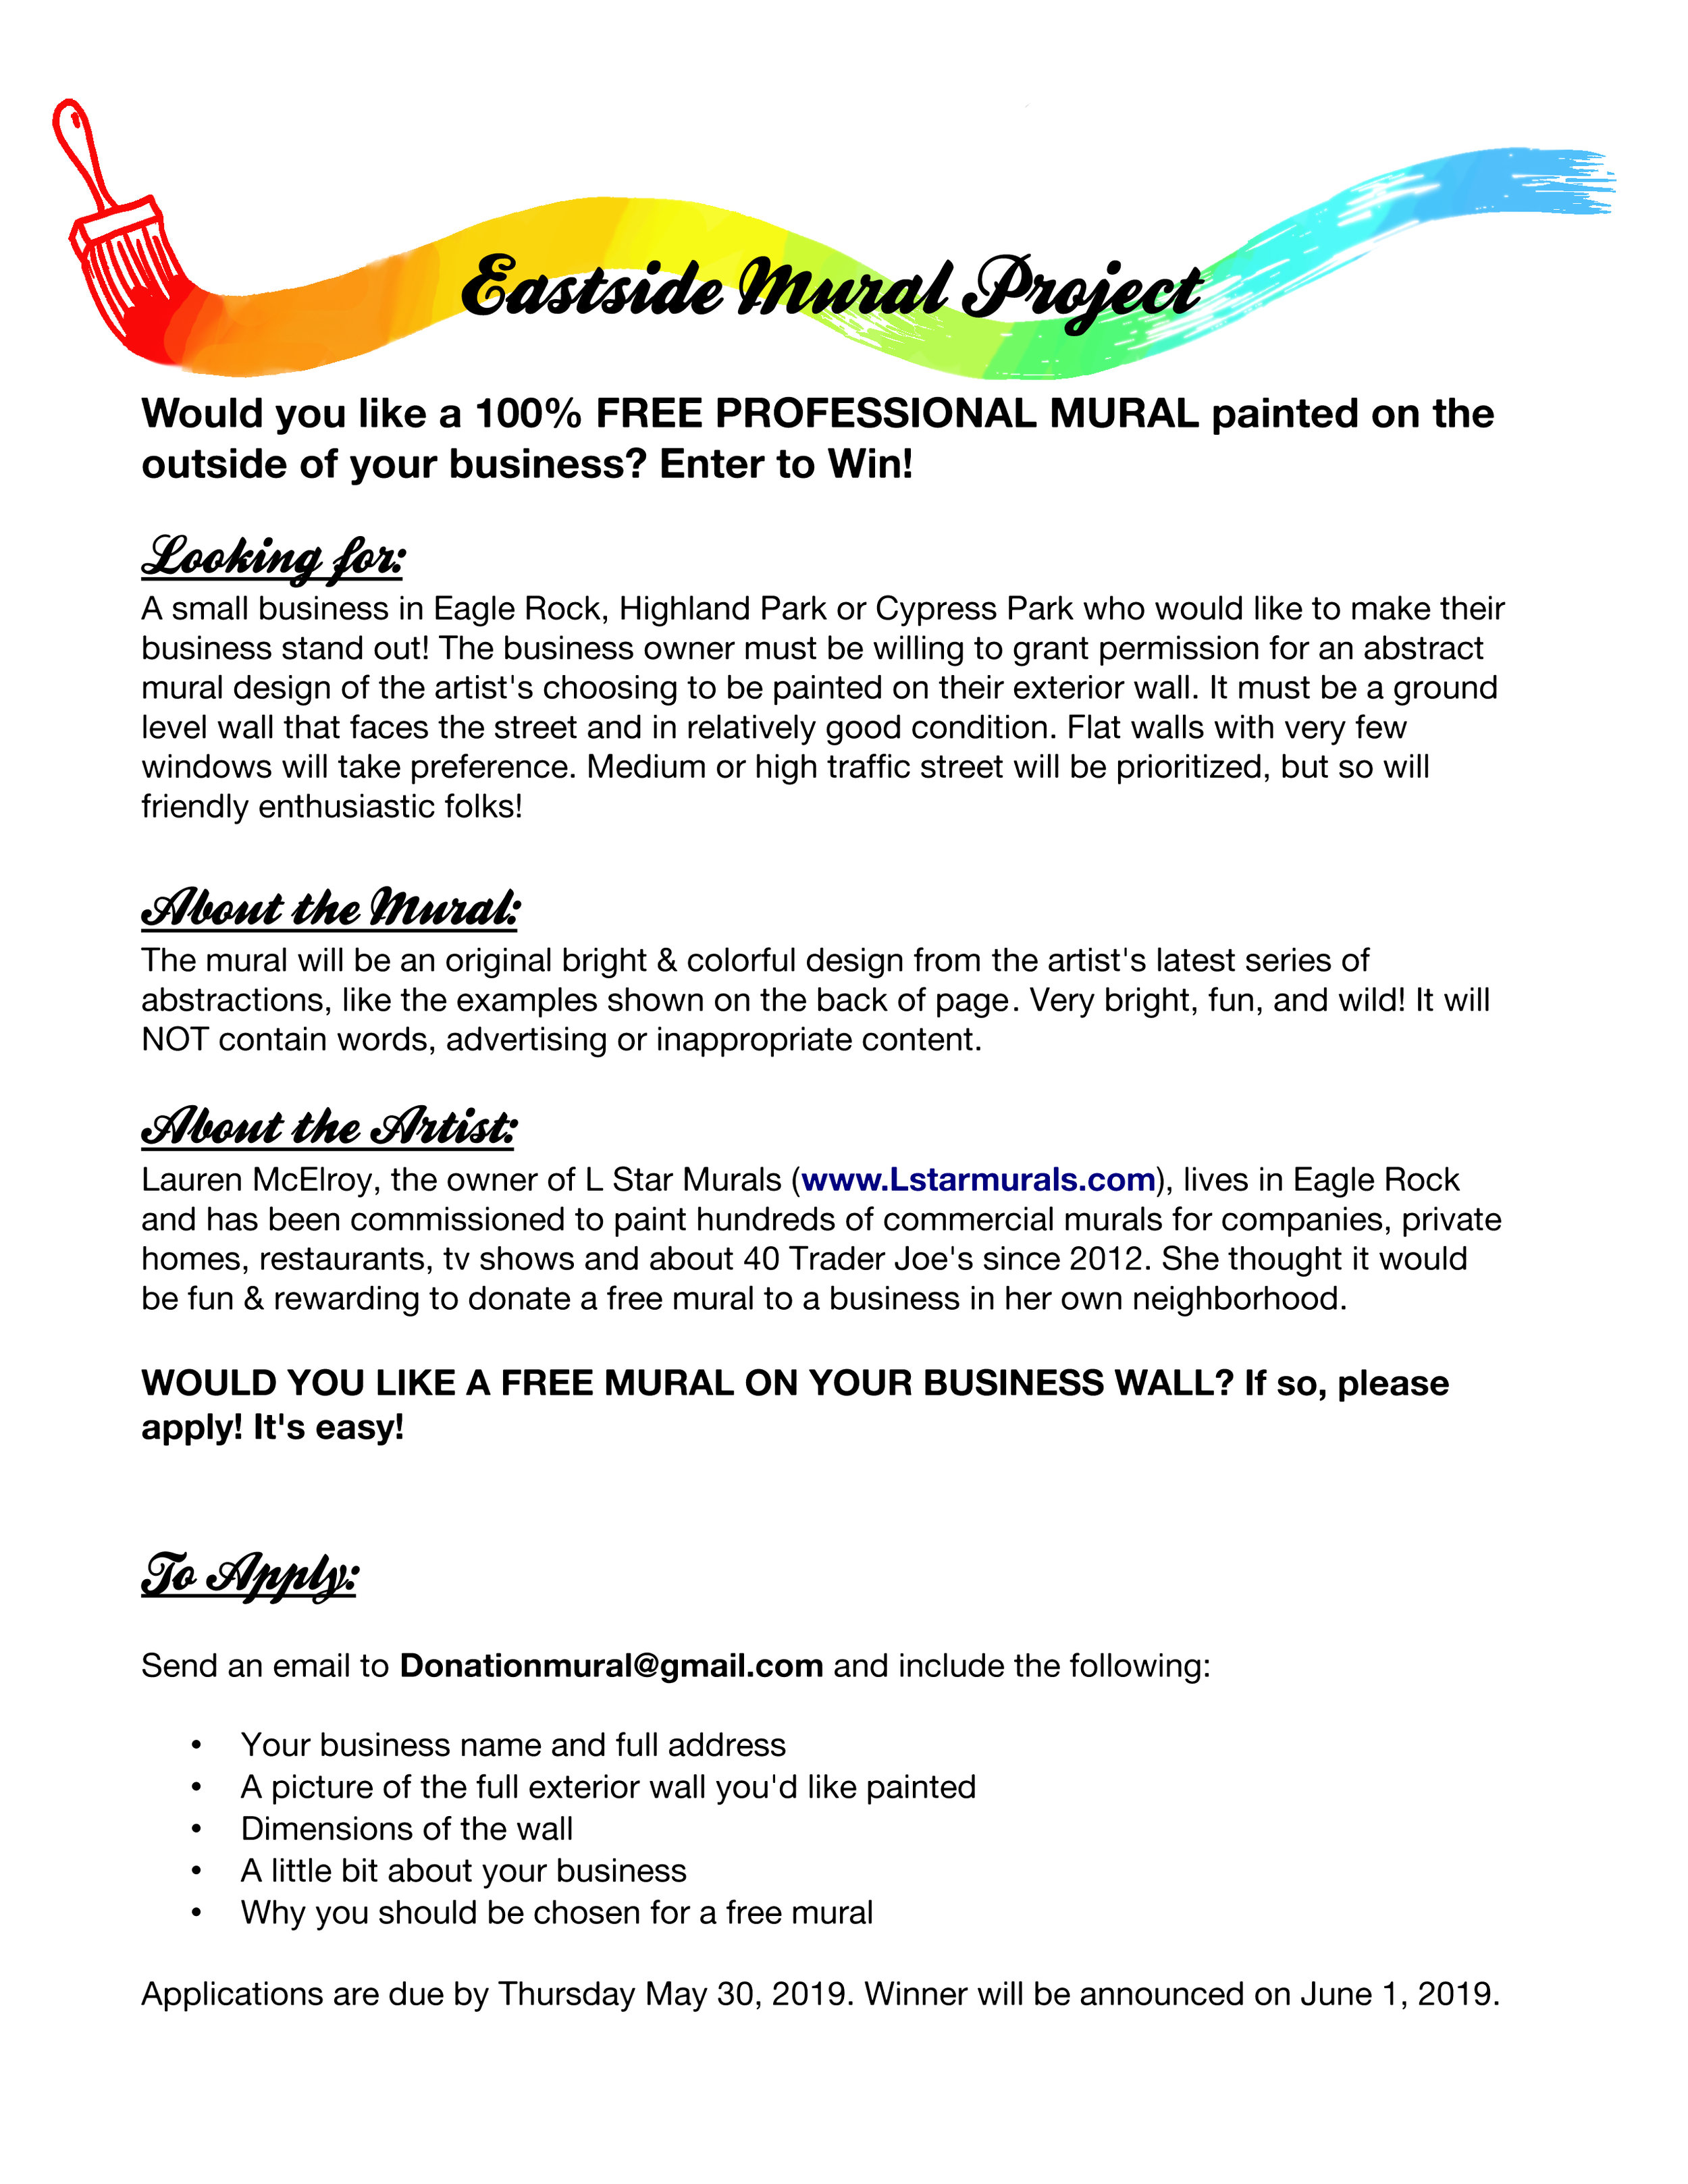 Eastside Mural Project Flyer updated.jpg